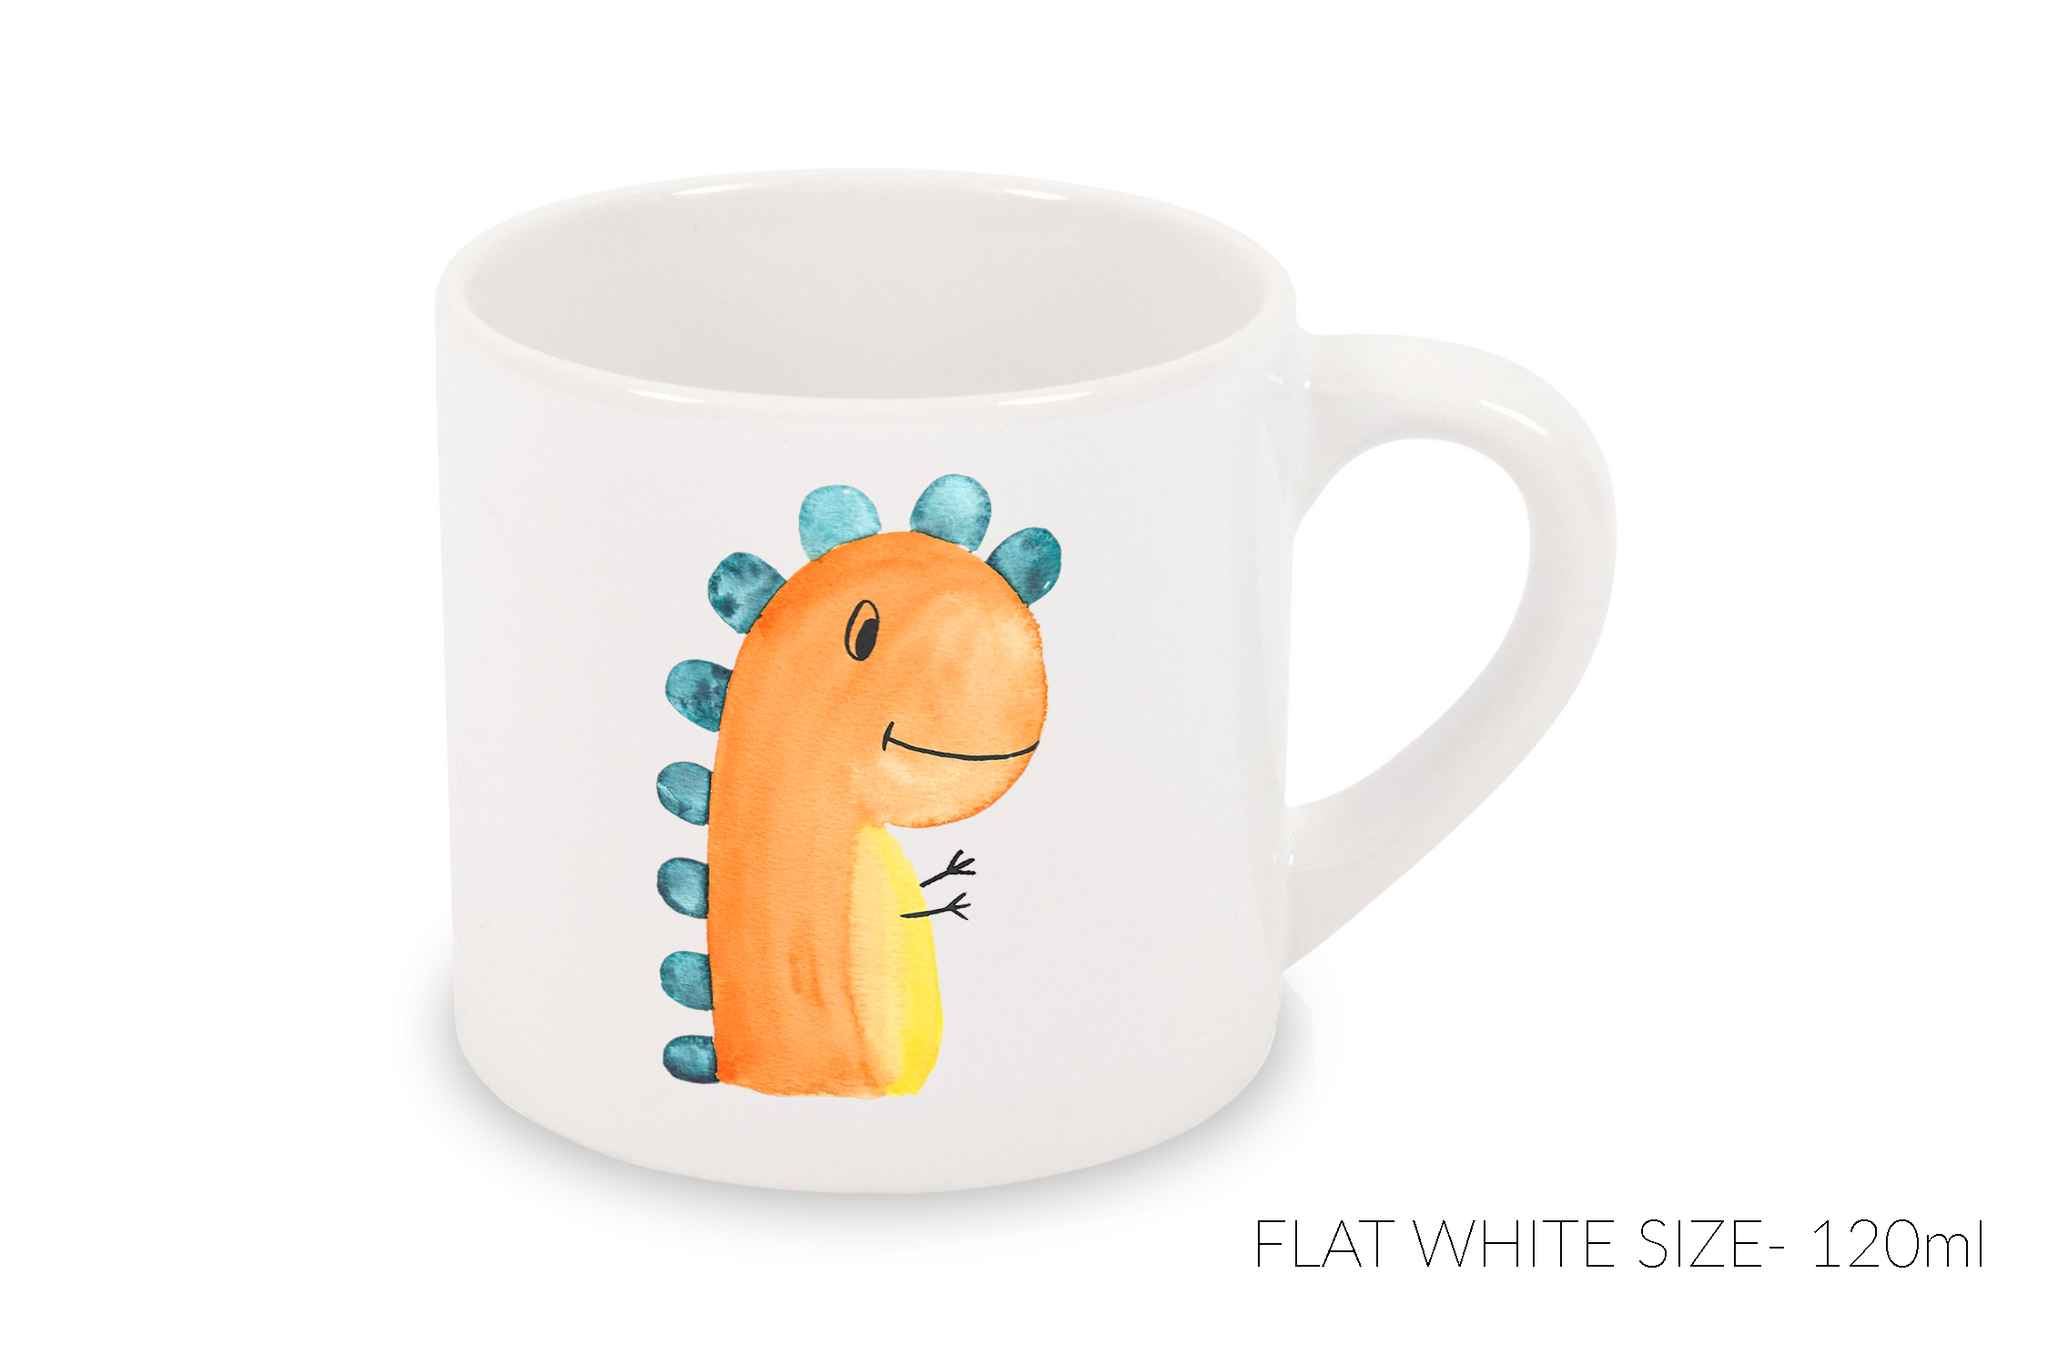 Flat White Mug 120ml - Orange Dinosaur